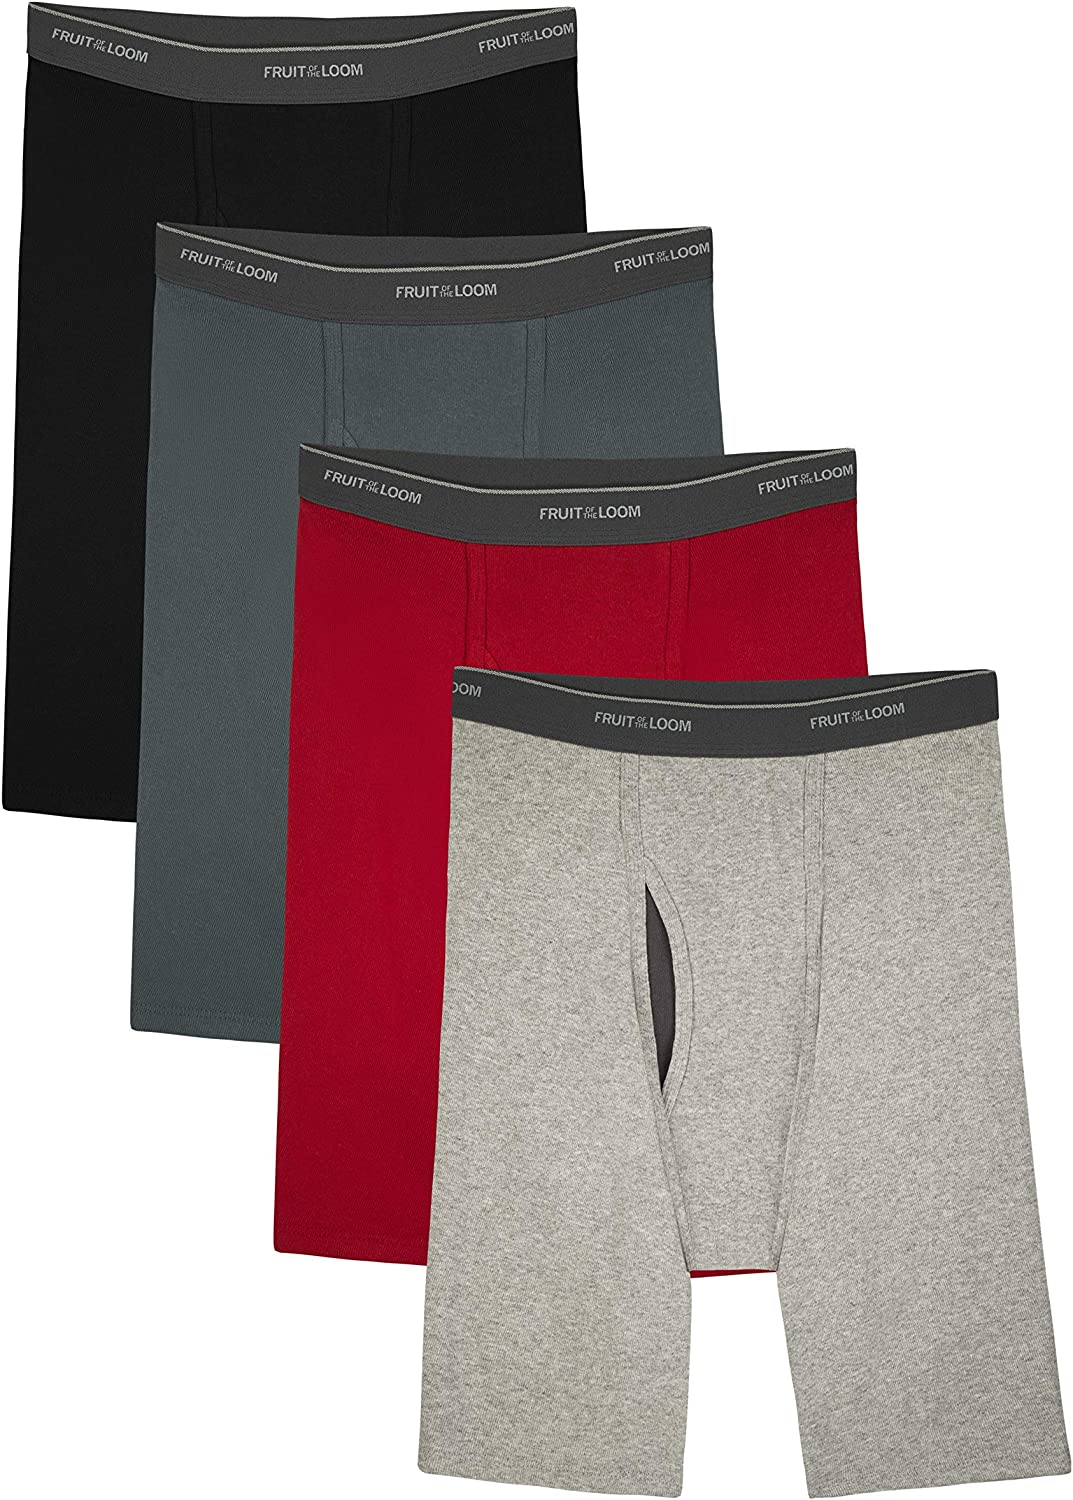 Fruit of the Loom Men's CoolZone Boxer Briefs, long Leg - Assorted Colors, XX-Large at  Men's Clothing store